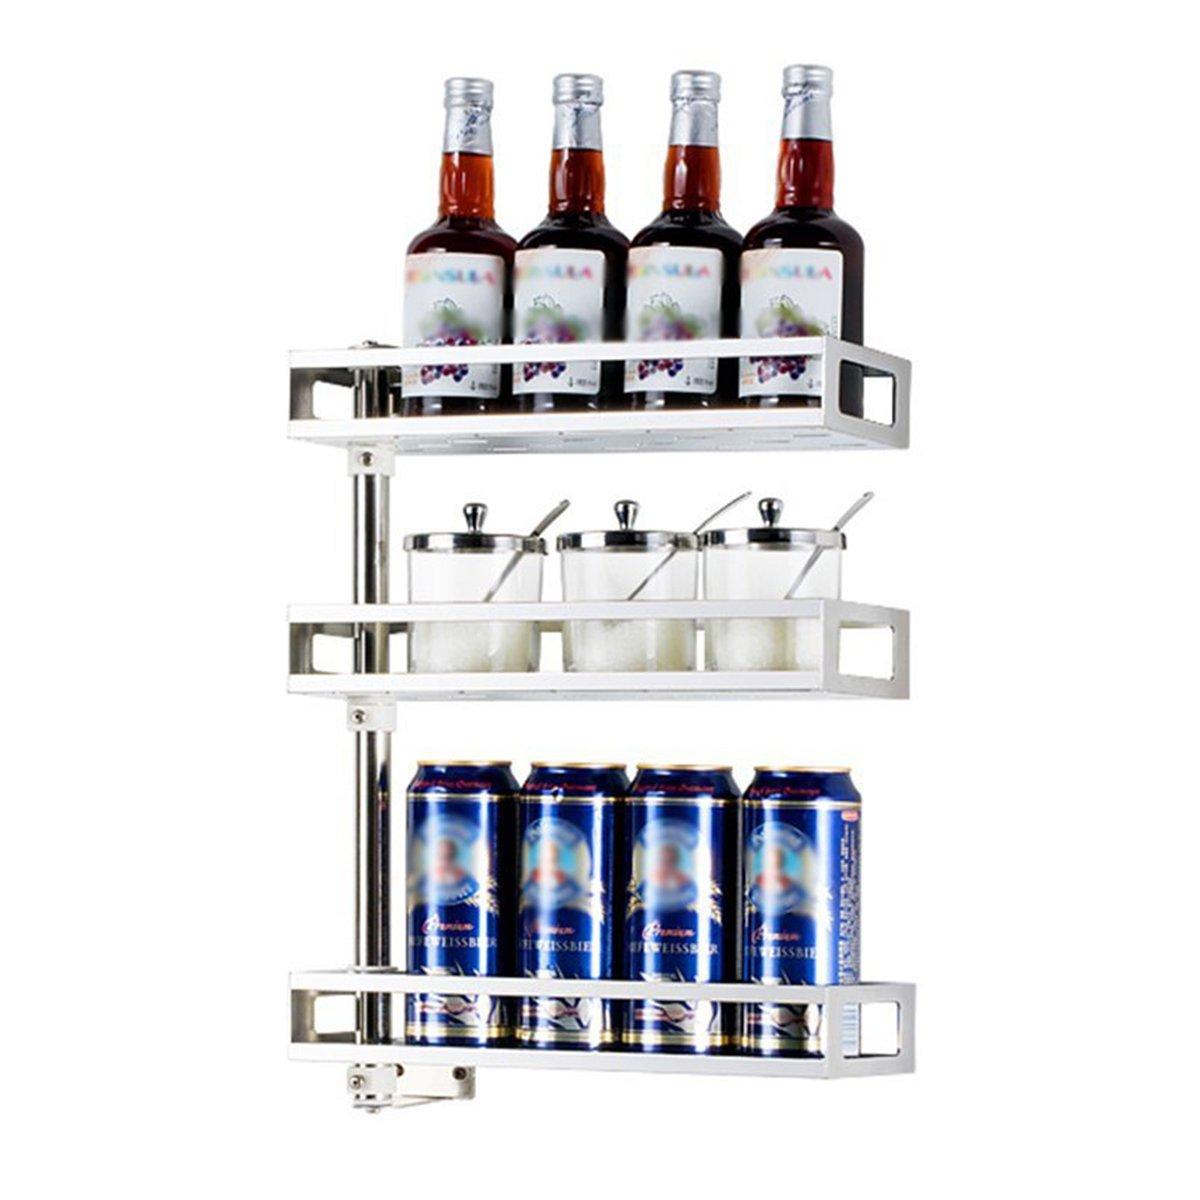 KINGSUNG Kitchen Shelves Organiser Wall-mounted Seasoning Rack Multilayer Stainless Steel Kitchen Supplies Shelves Size Optional ( Size : 3 layers )